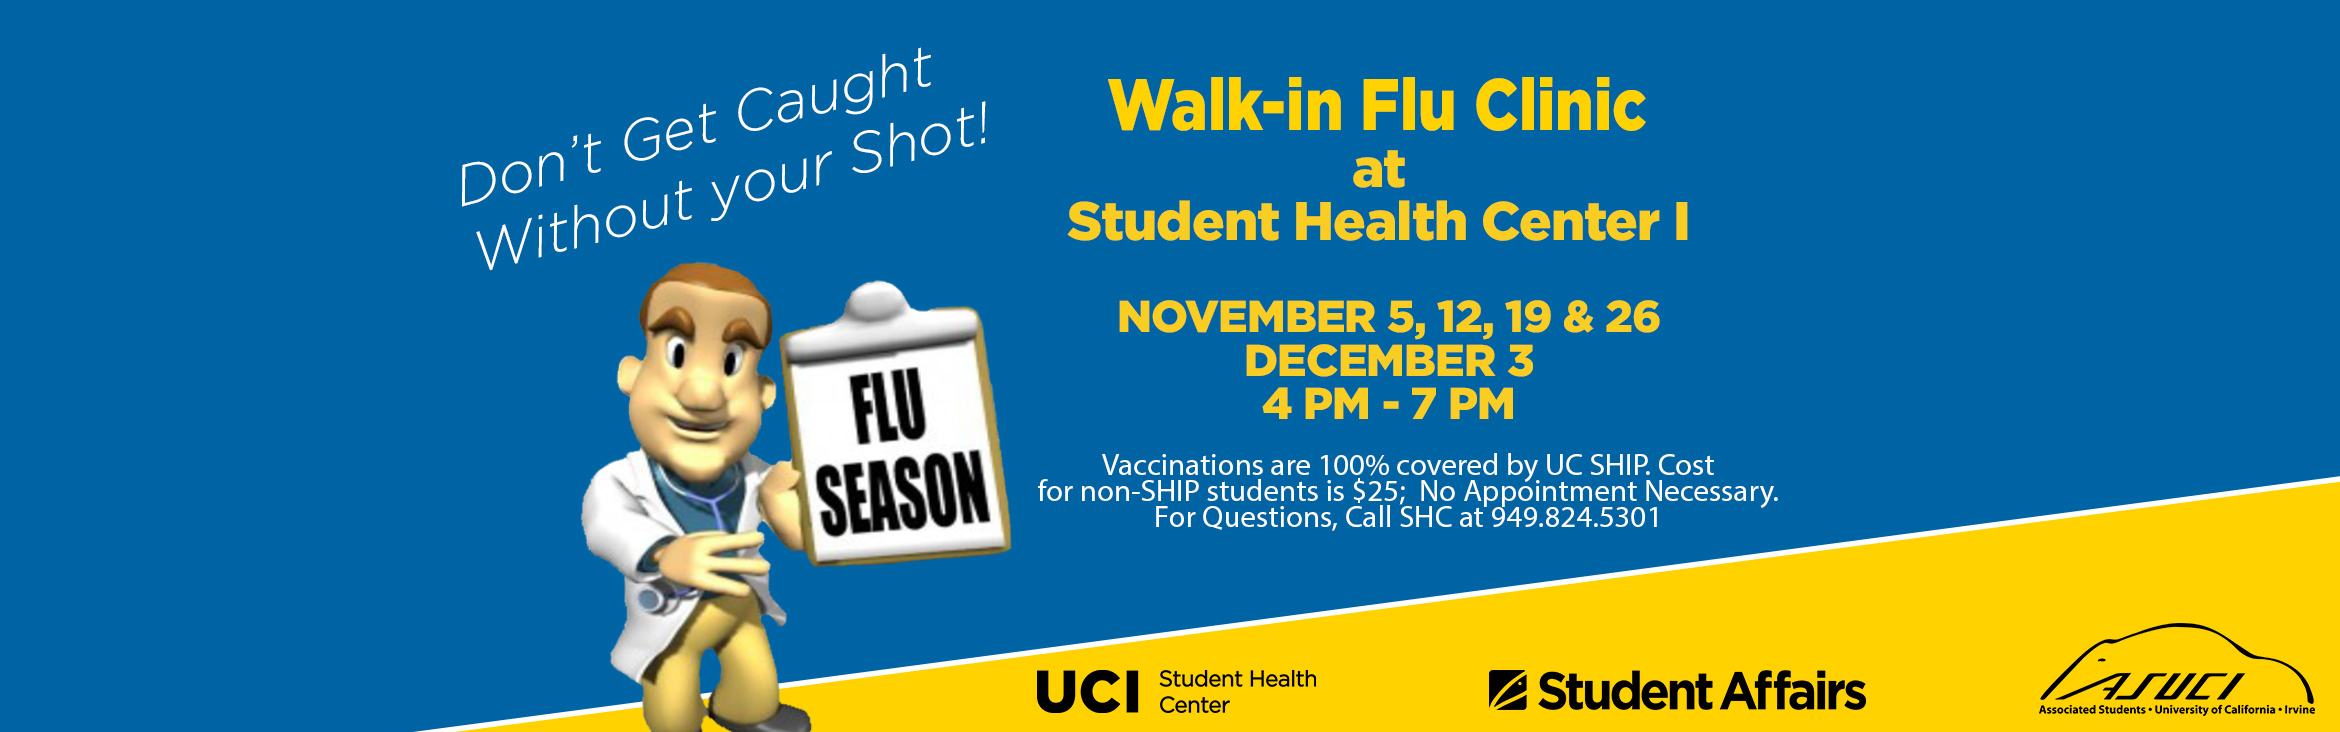 Don't Get Caught Without Your Shot! Upcoming Flu Vaccine Clinics, Walk-in Clinic Student Health Center